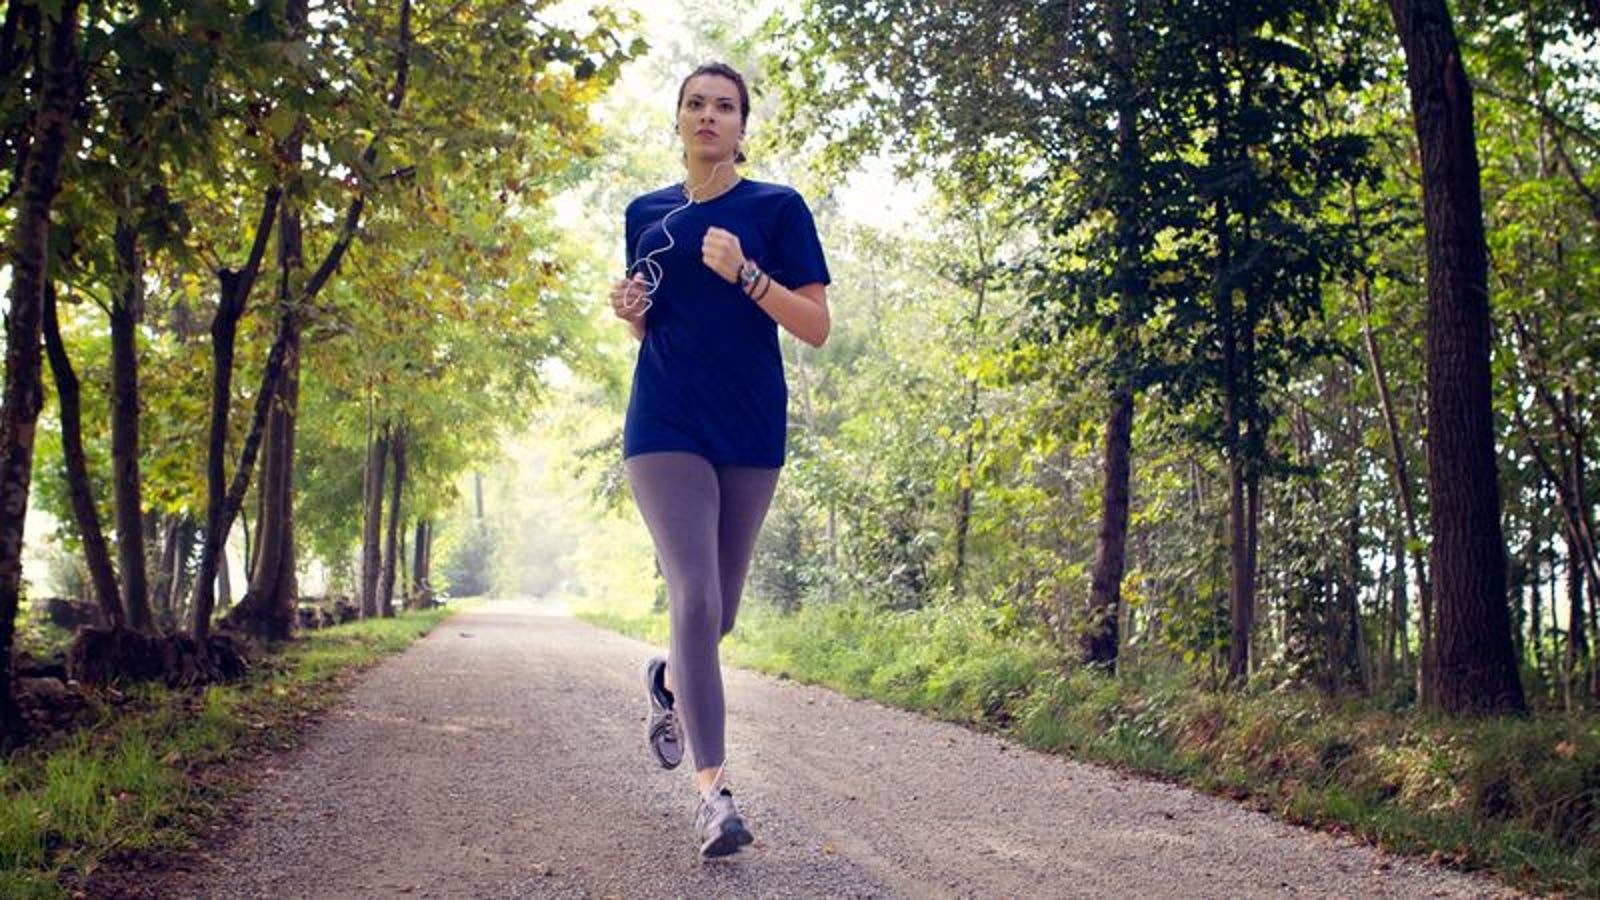 Nations Female Joggers Know They Will One Day Be Assaulted, Buried In Woods-4384